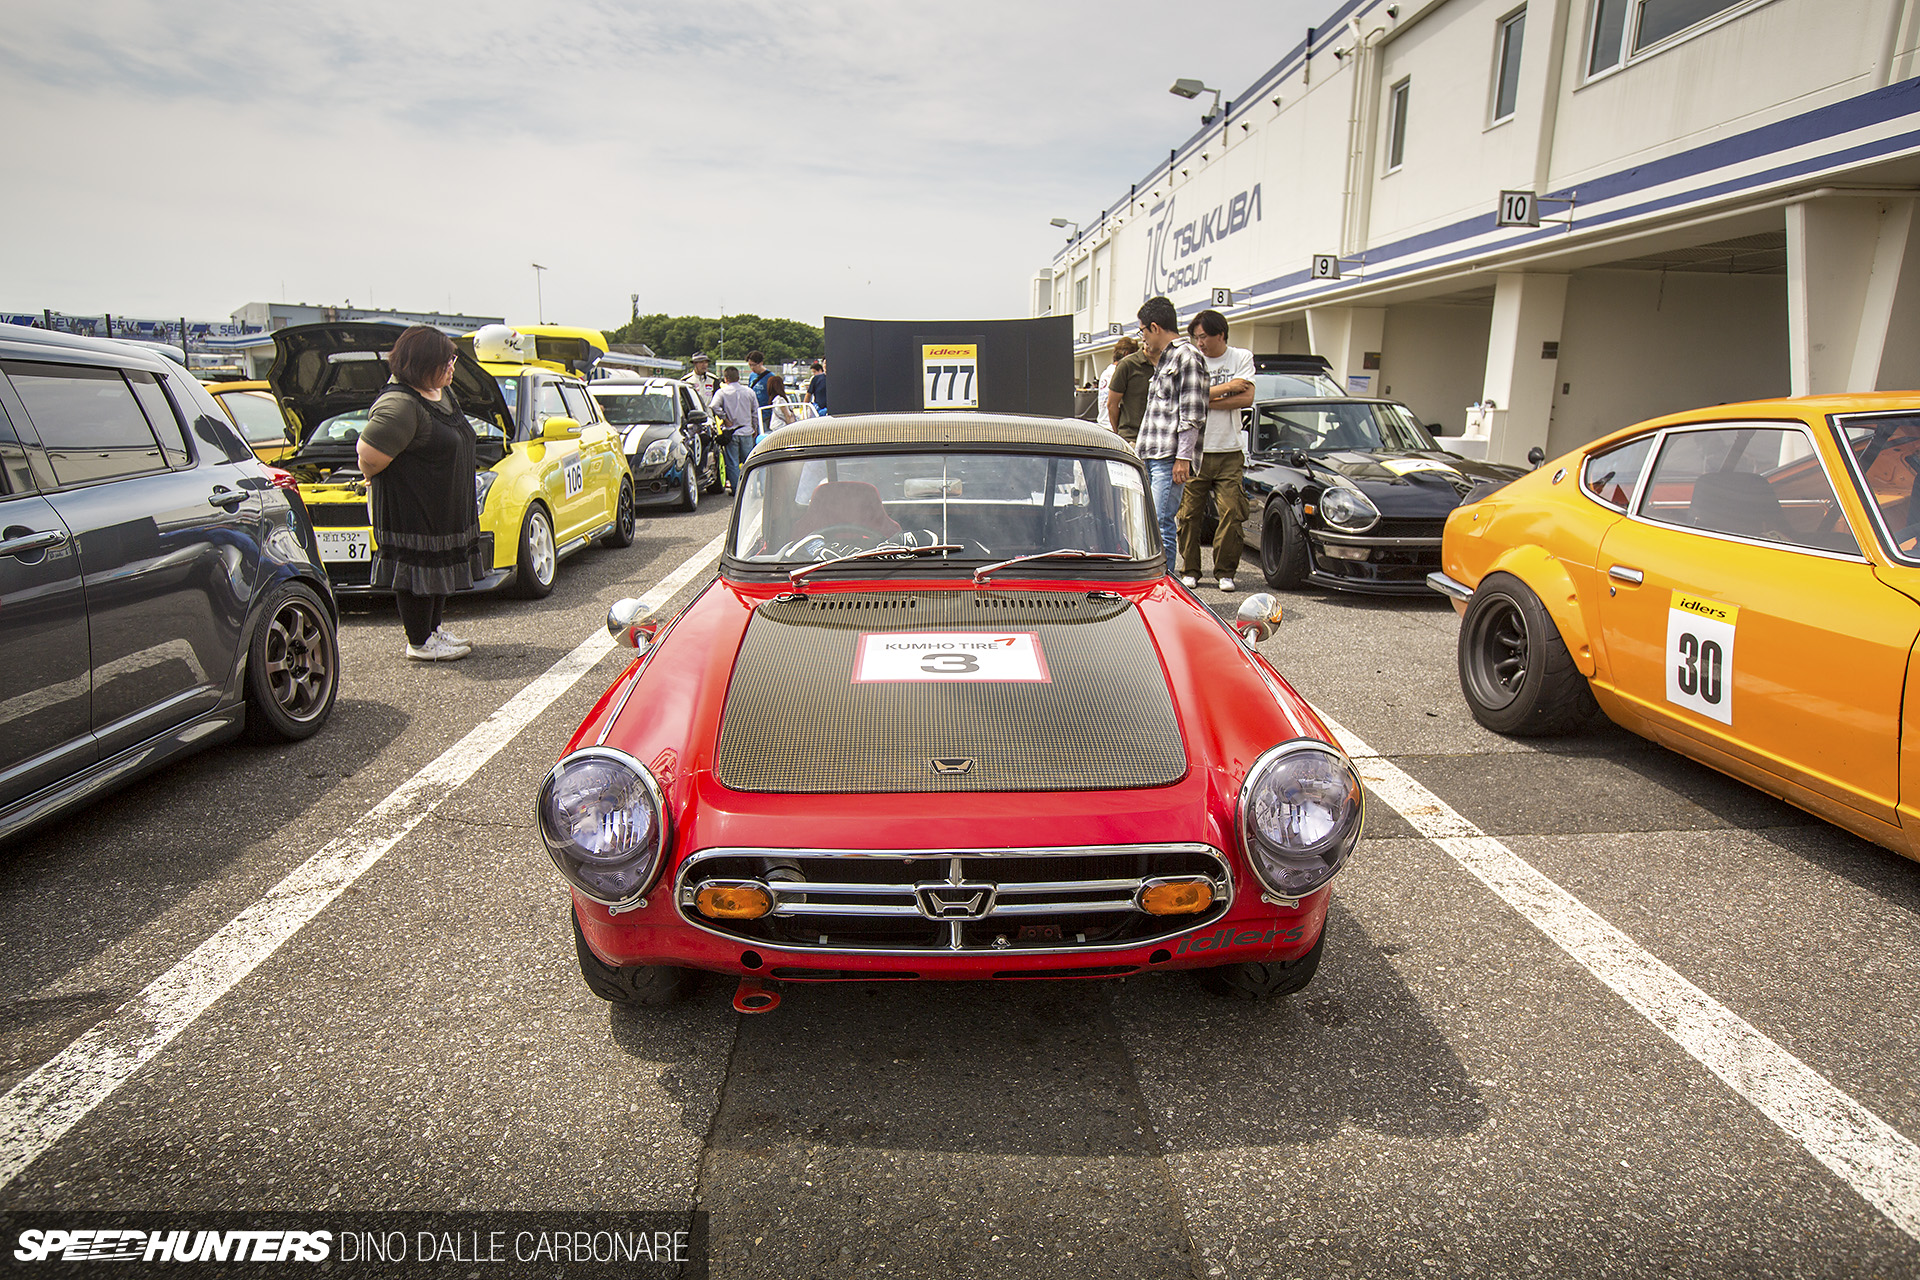 A Honda S800 Like You've Never Seen Before